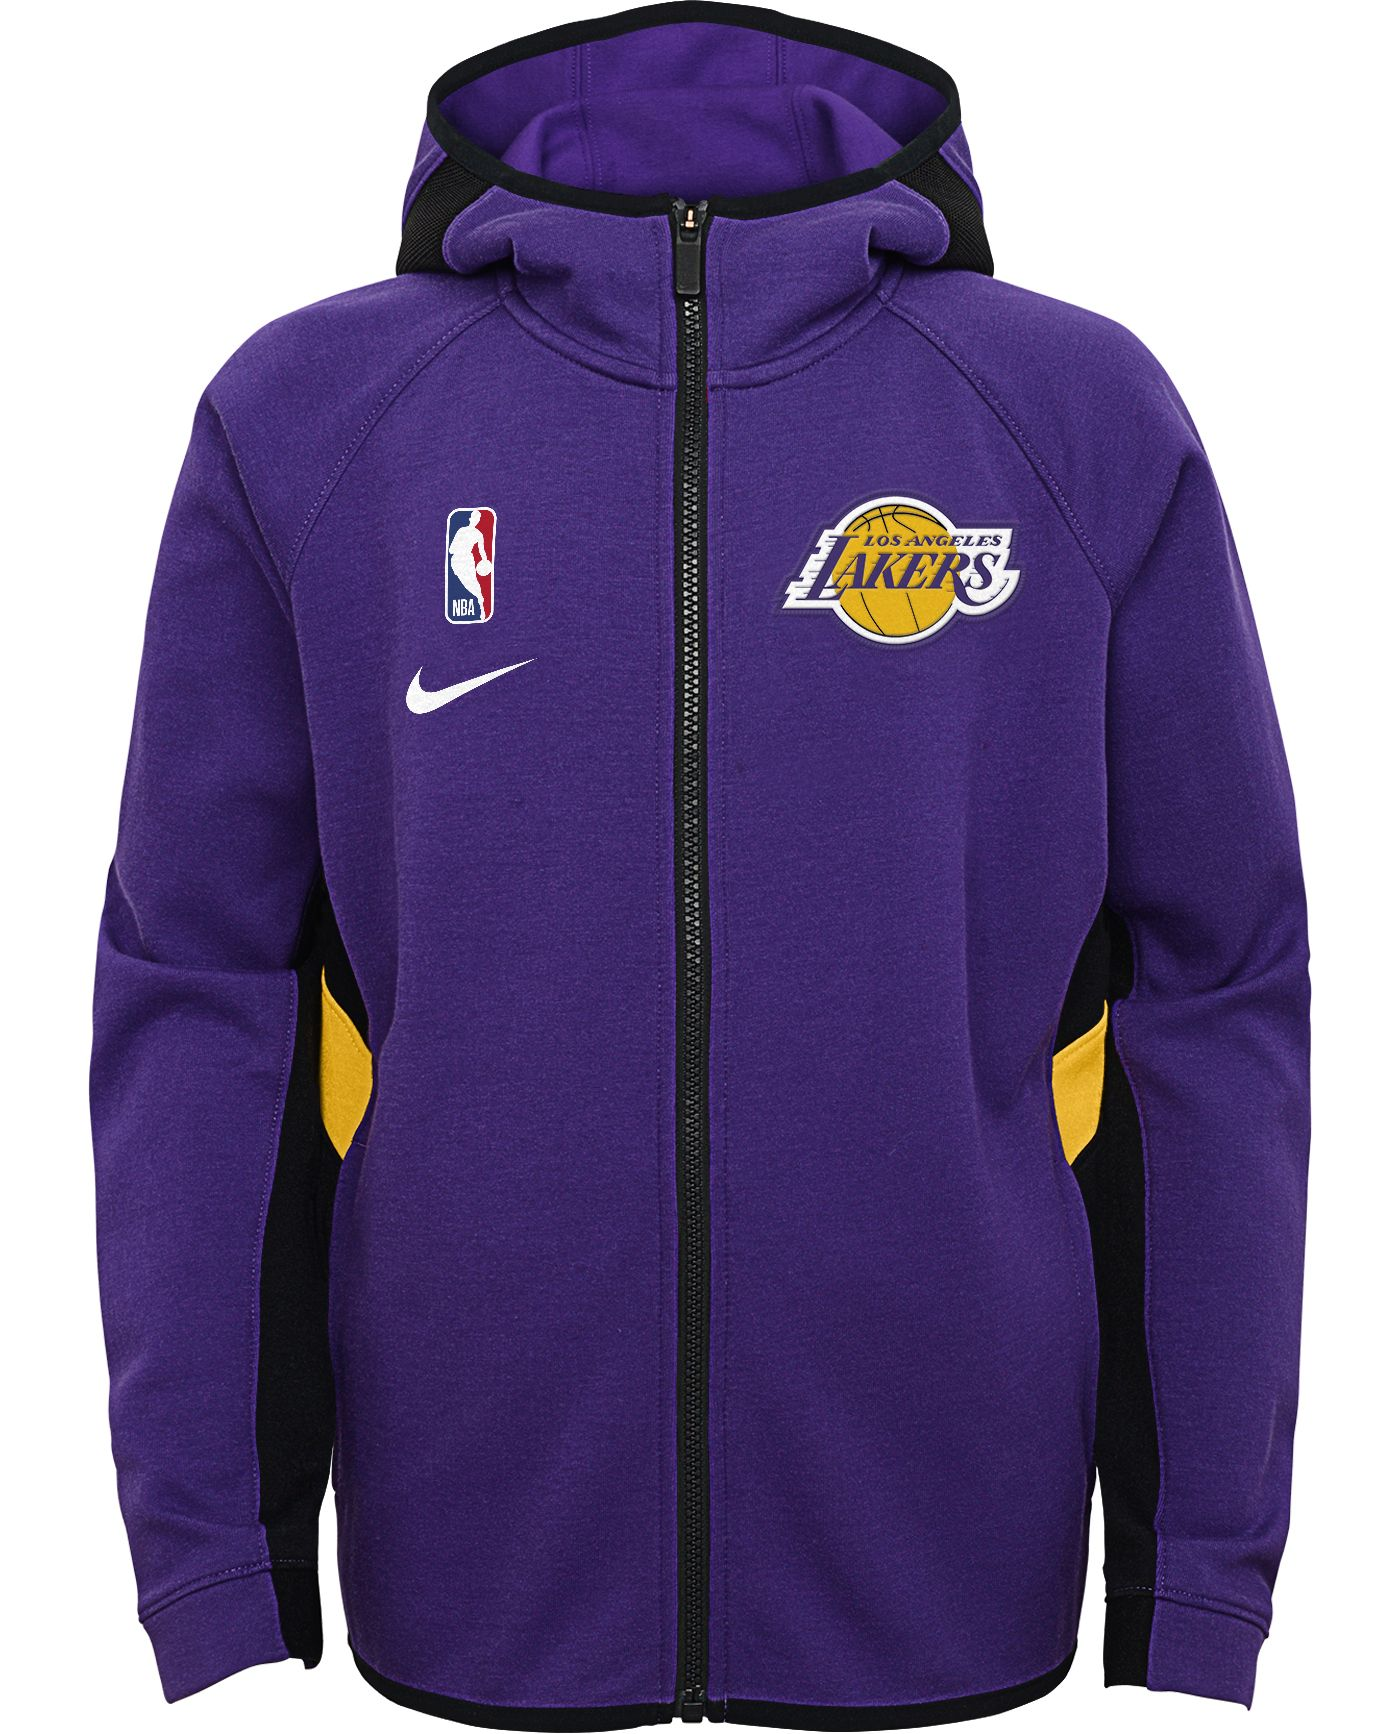 Nike Youth Los Angeles Lakers On-Court Therma Flex Showtime Full-Zip Hoodie